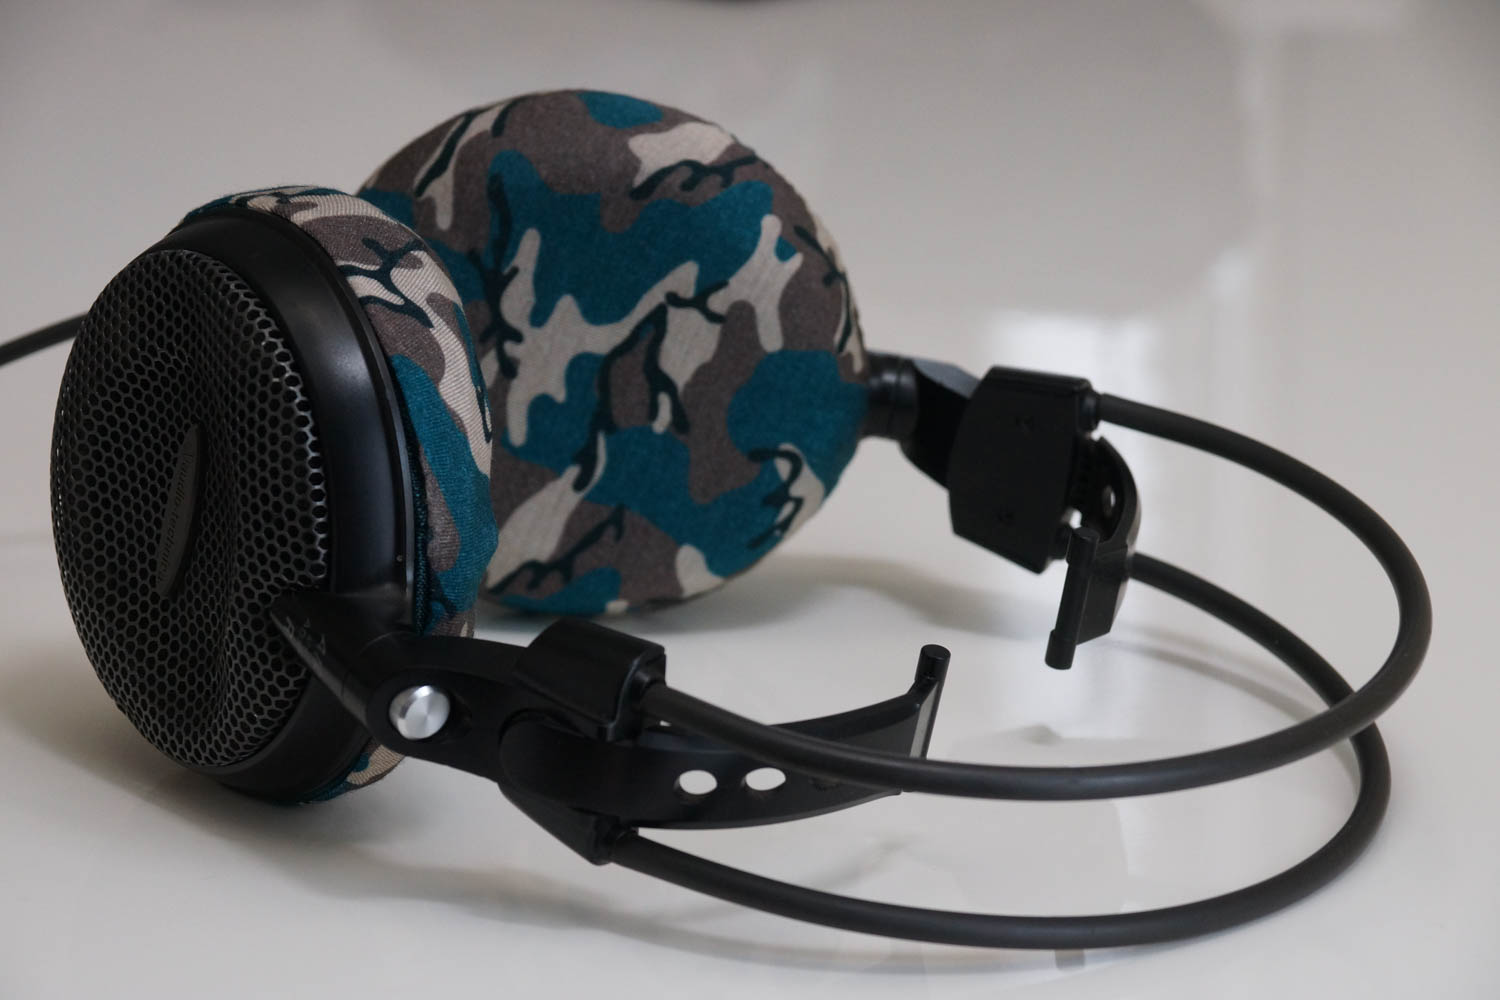 audio-technica ATH-AD300 ear pads compatible with mimimamo